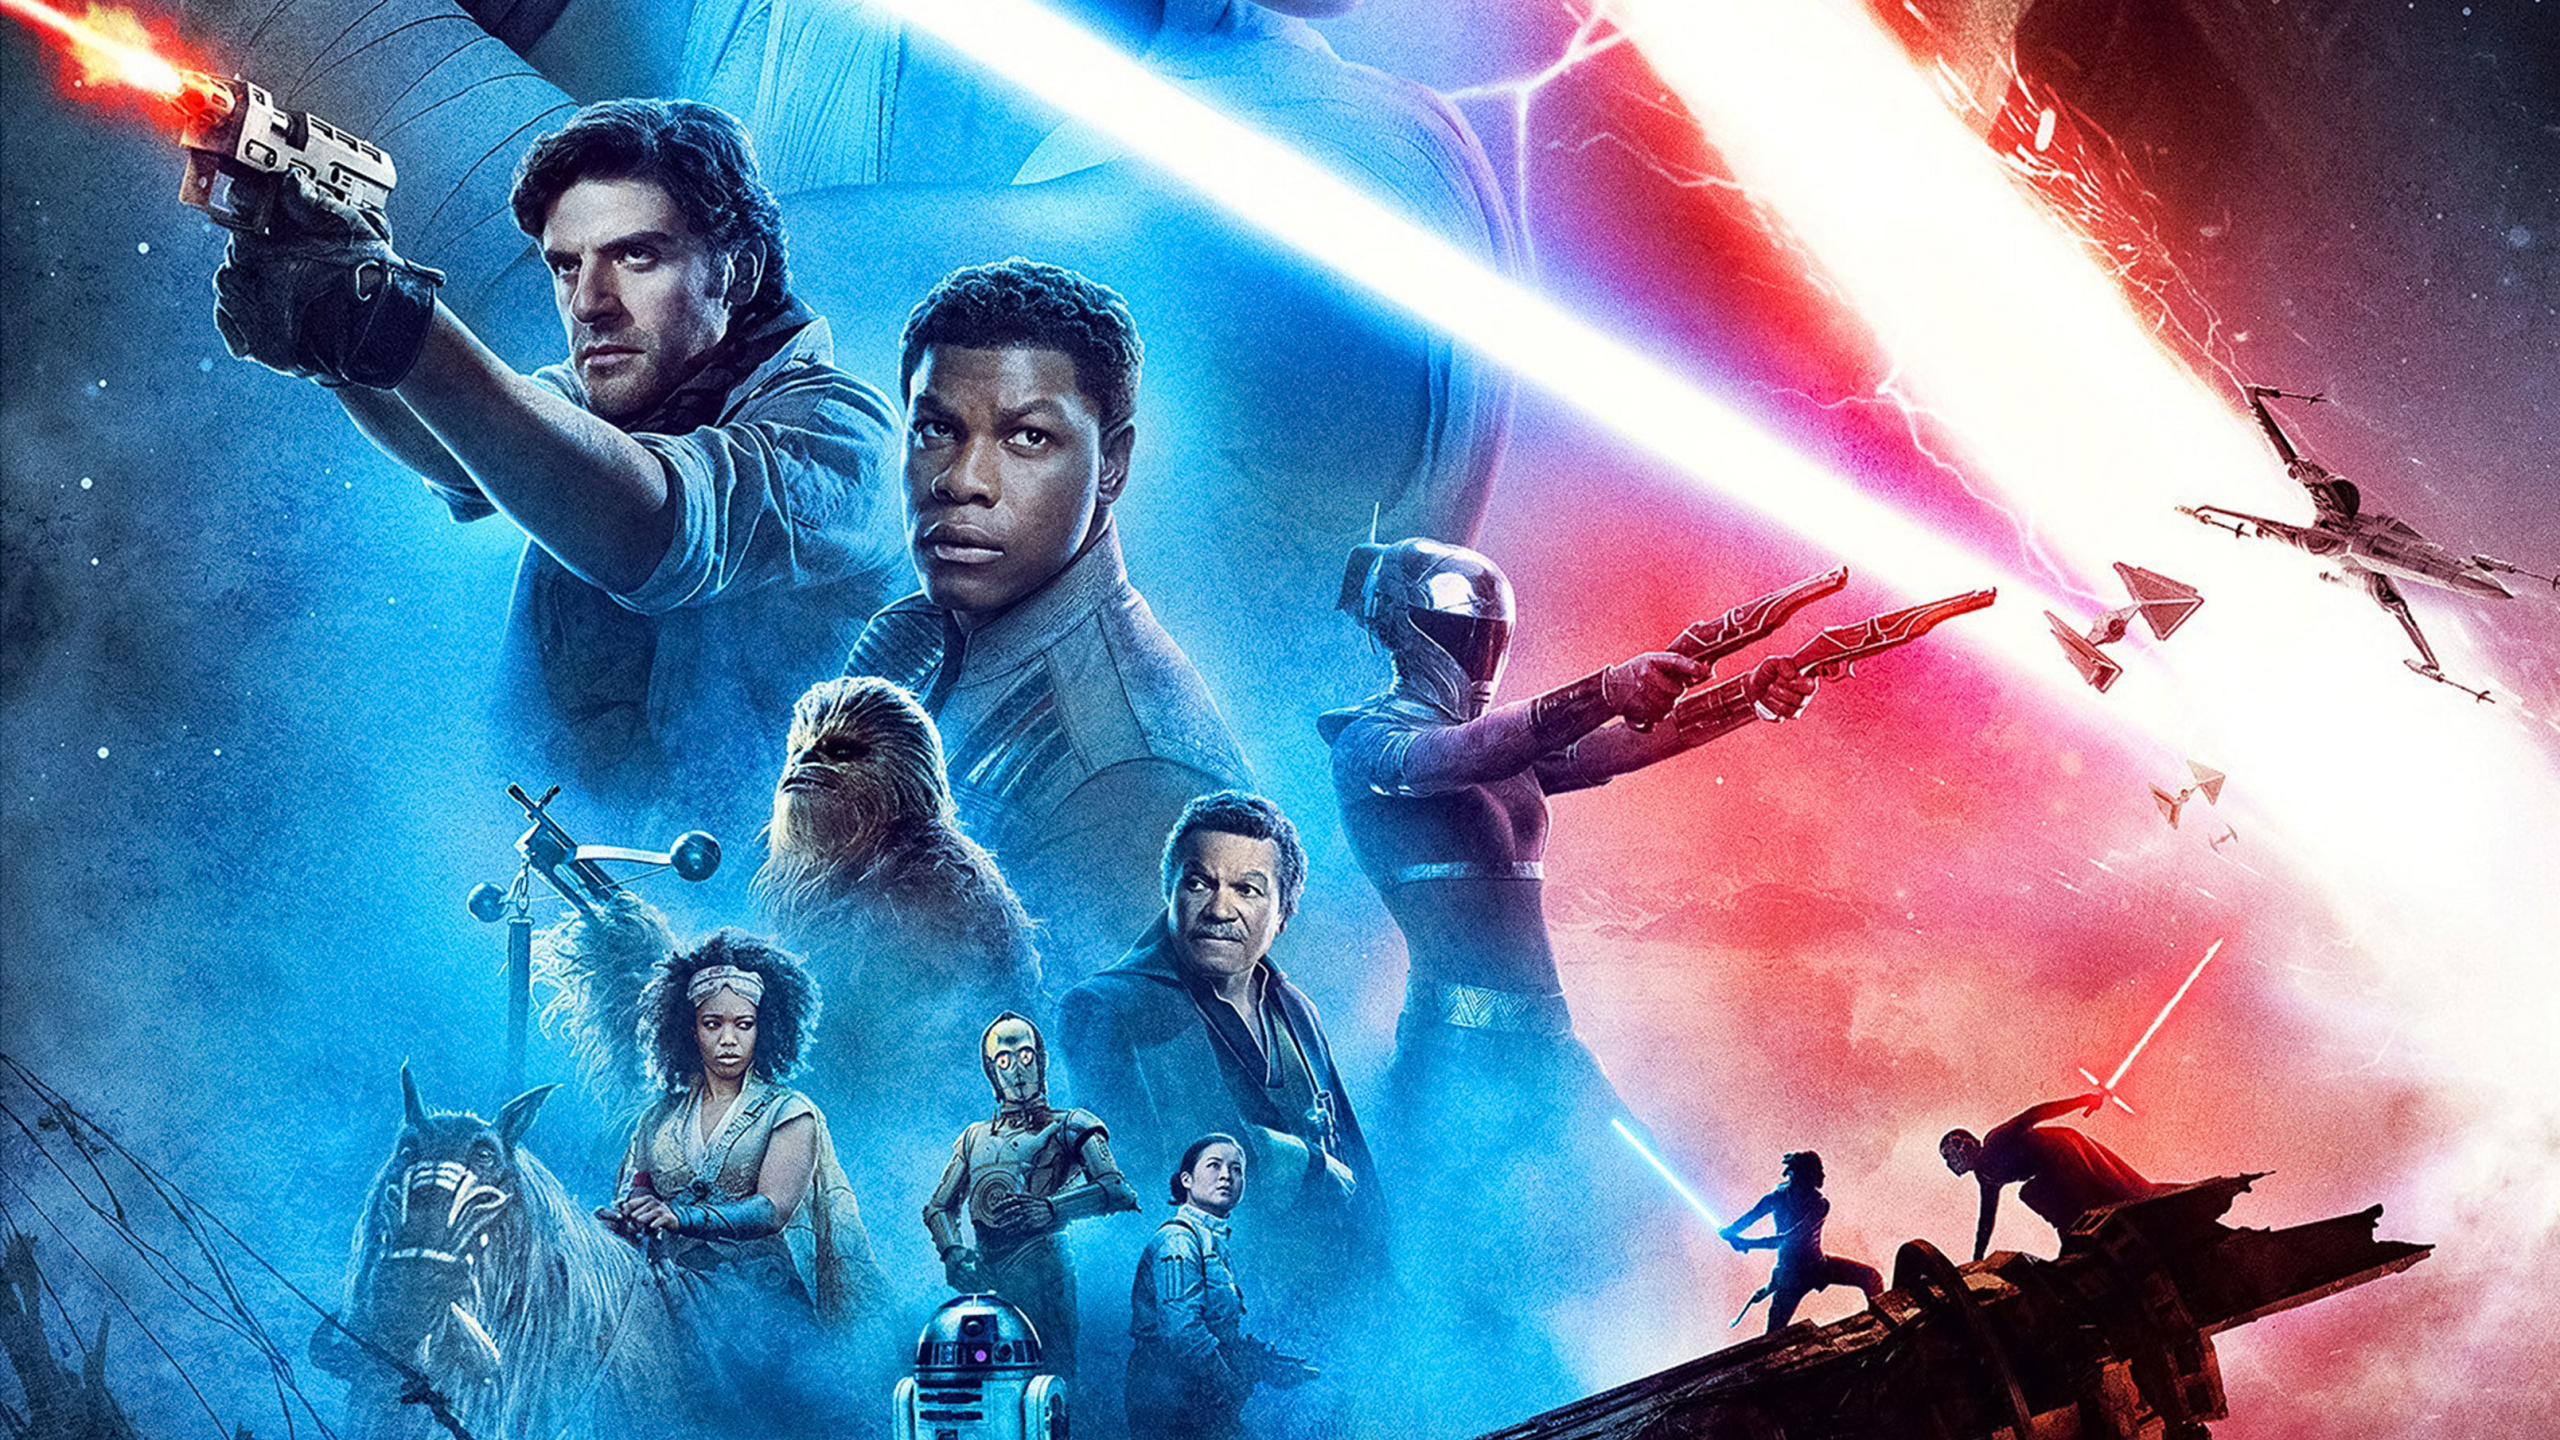 2560x1440 Star Wars 9 Poster 1440p Resolution Wallpaper Hd Movies 4k Wallpapers Images Photos And Background